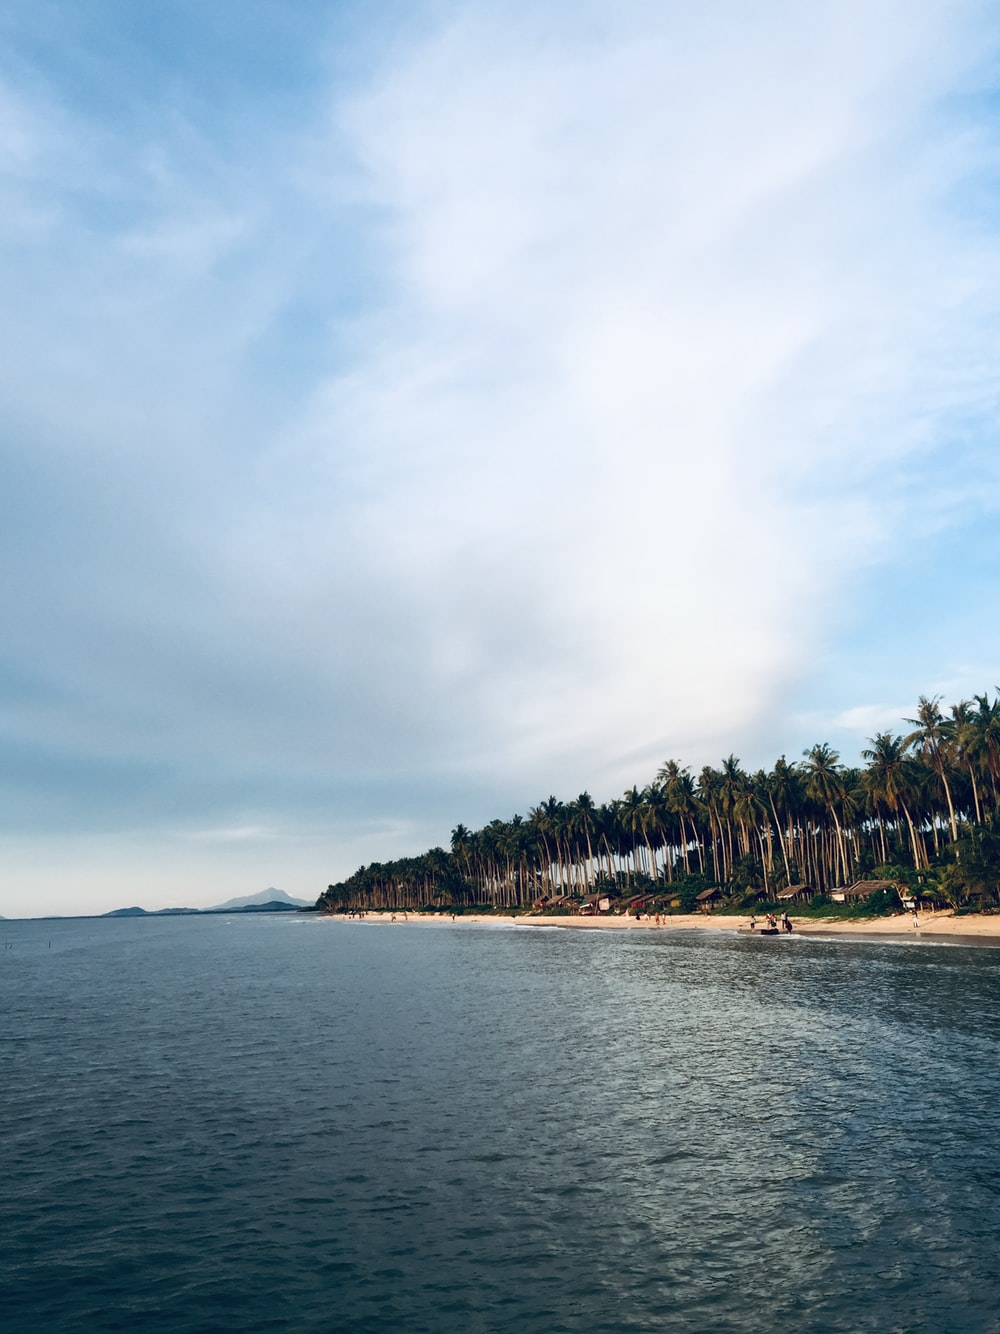 coconut trees in beach at daytime